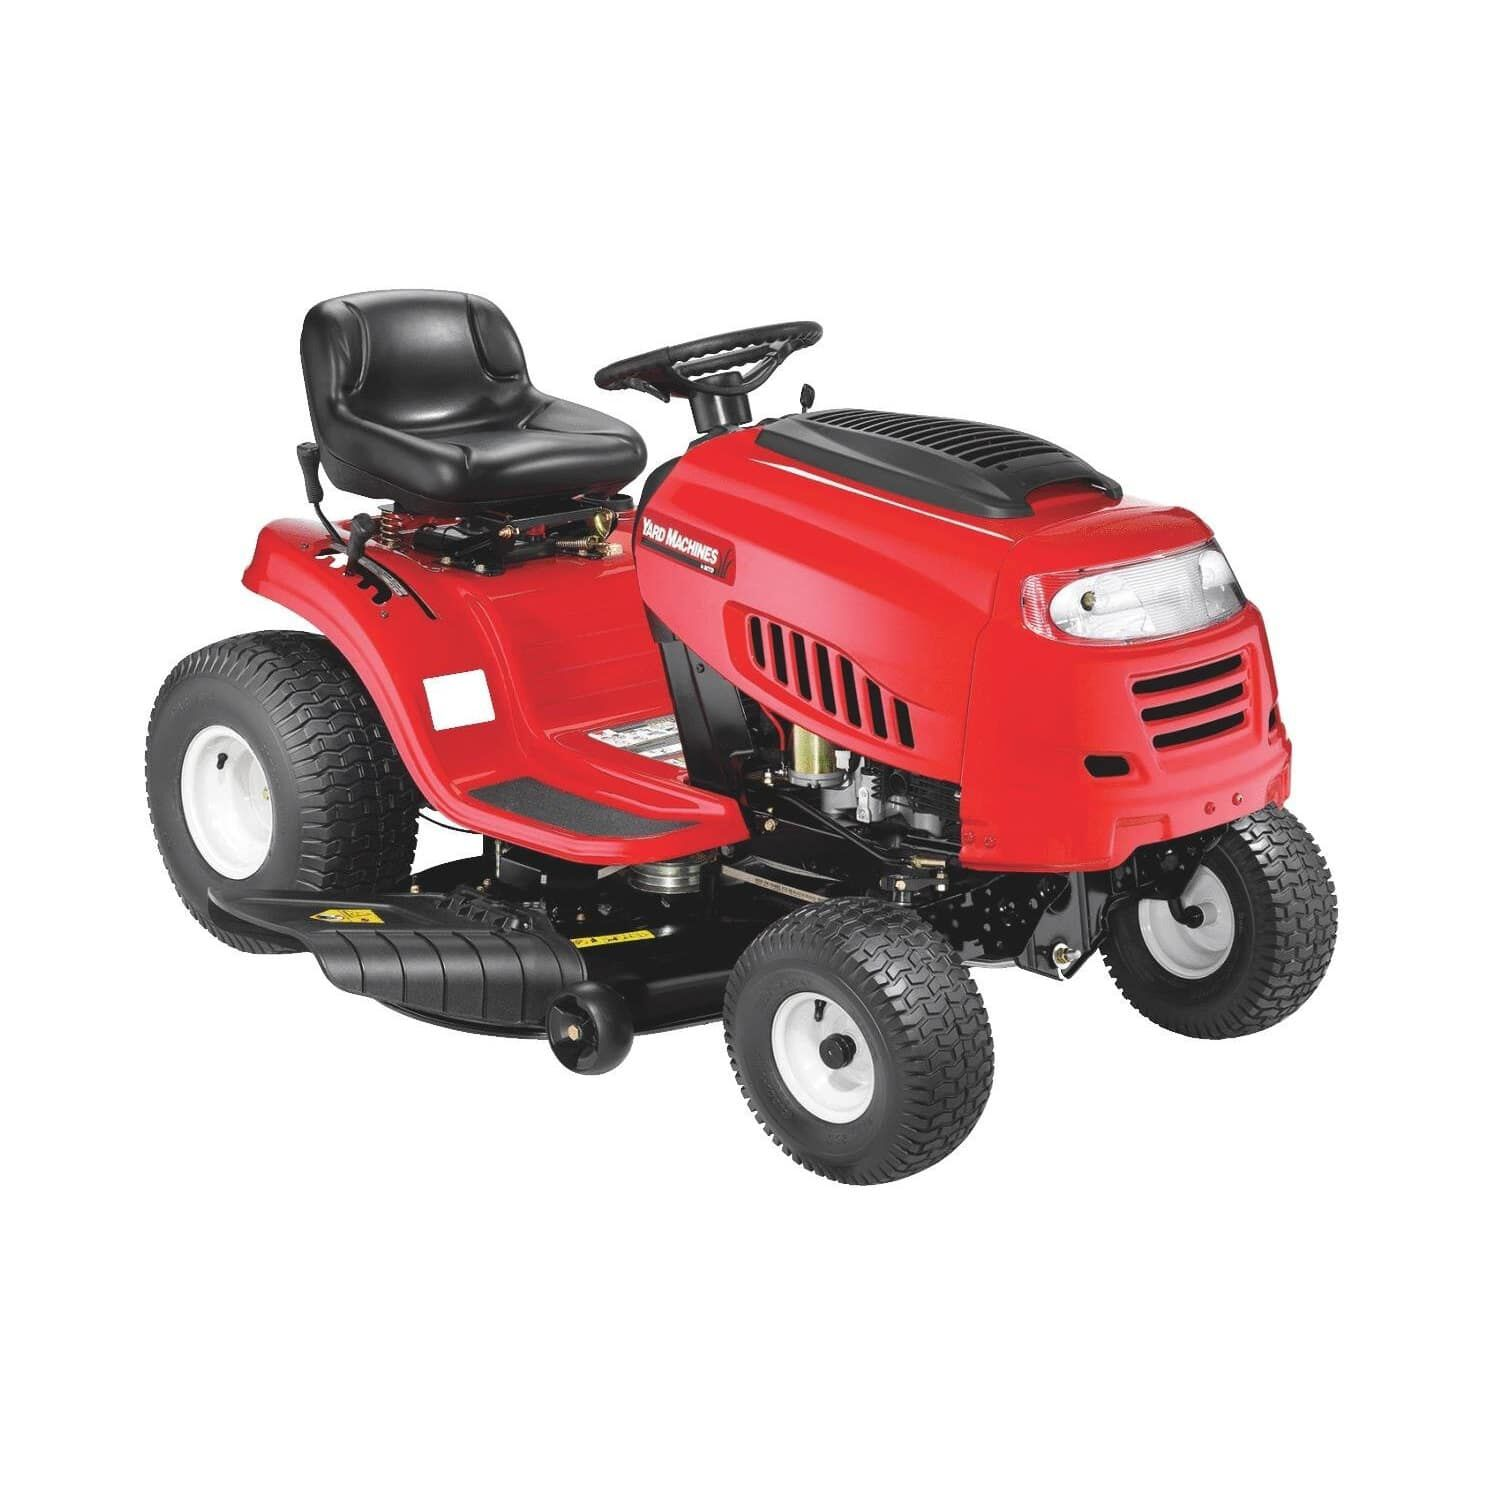 hight resolution of yard machines outdoor power 42 420cc riding lawn mower with 7 speed manual transmission